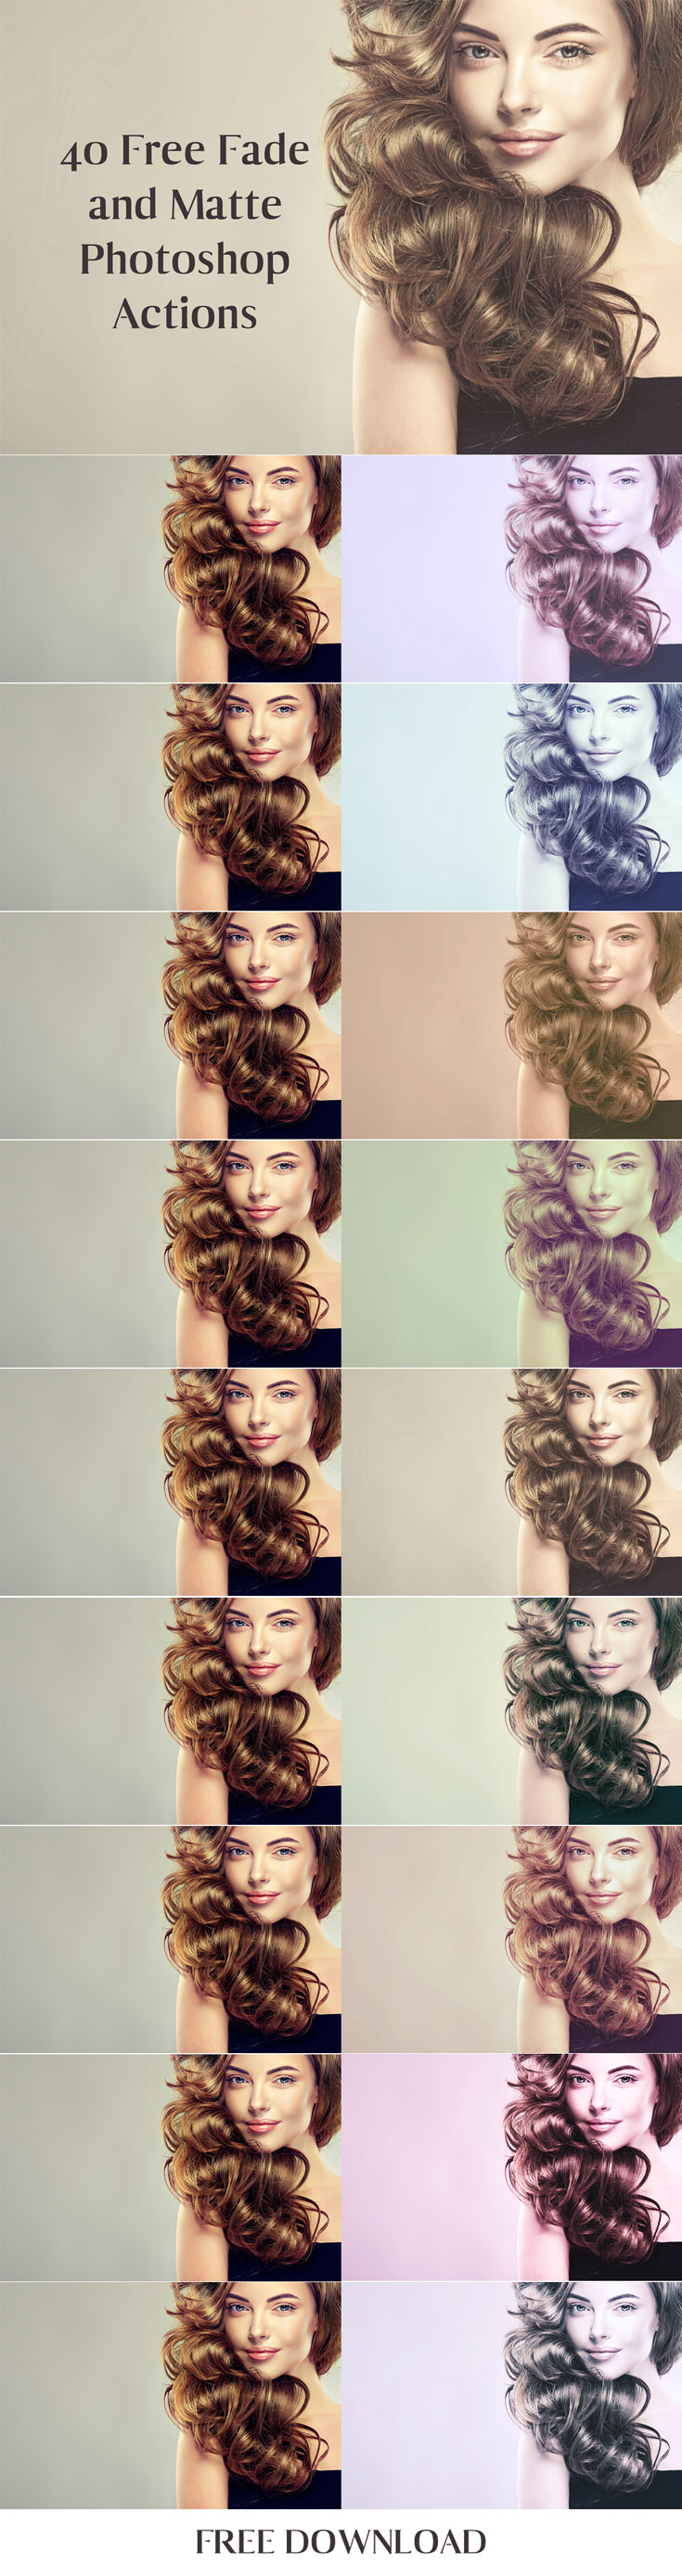 40 Free Fade Matte Photoshop Actions | Photoshop Resources